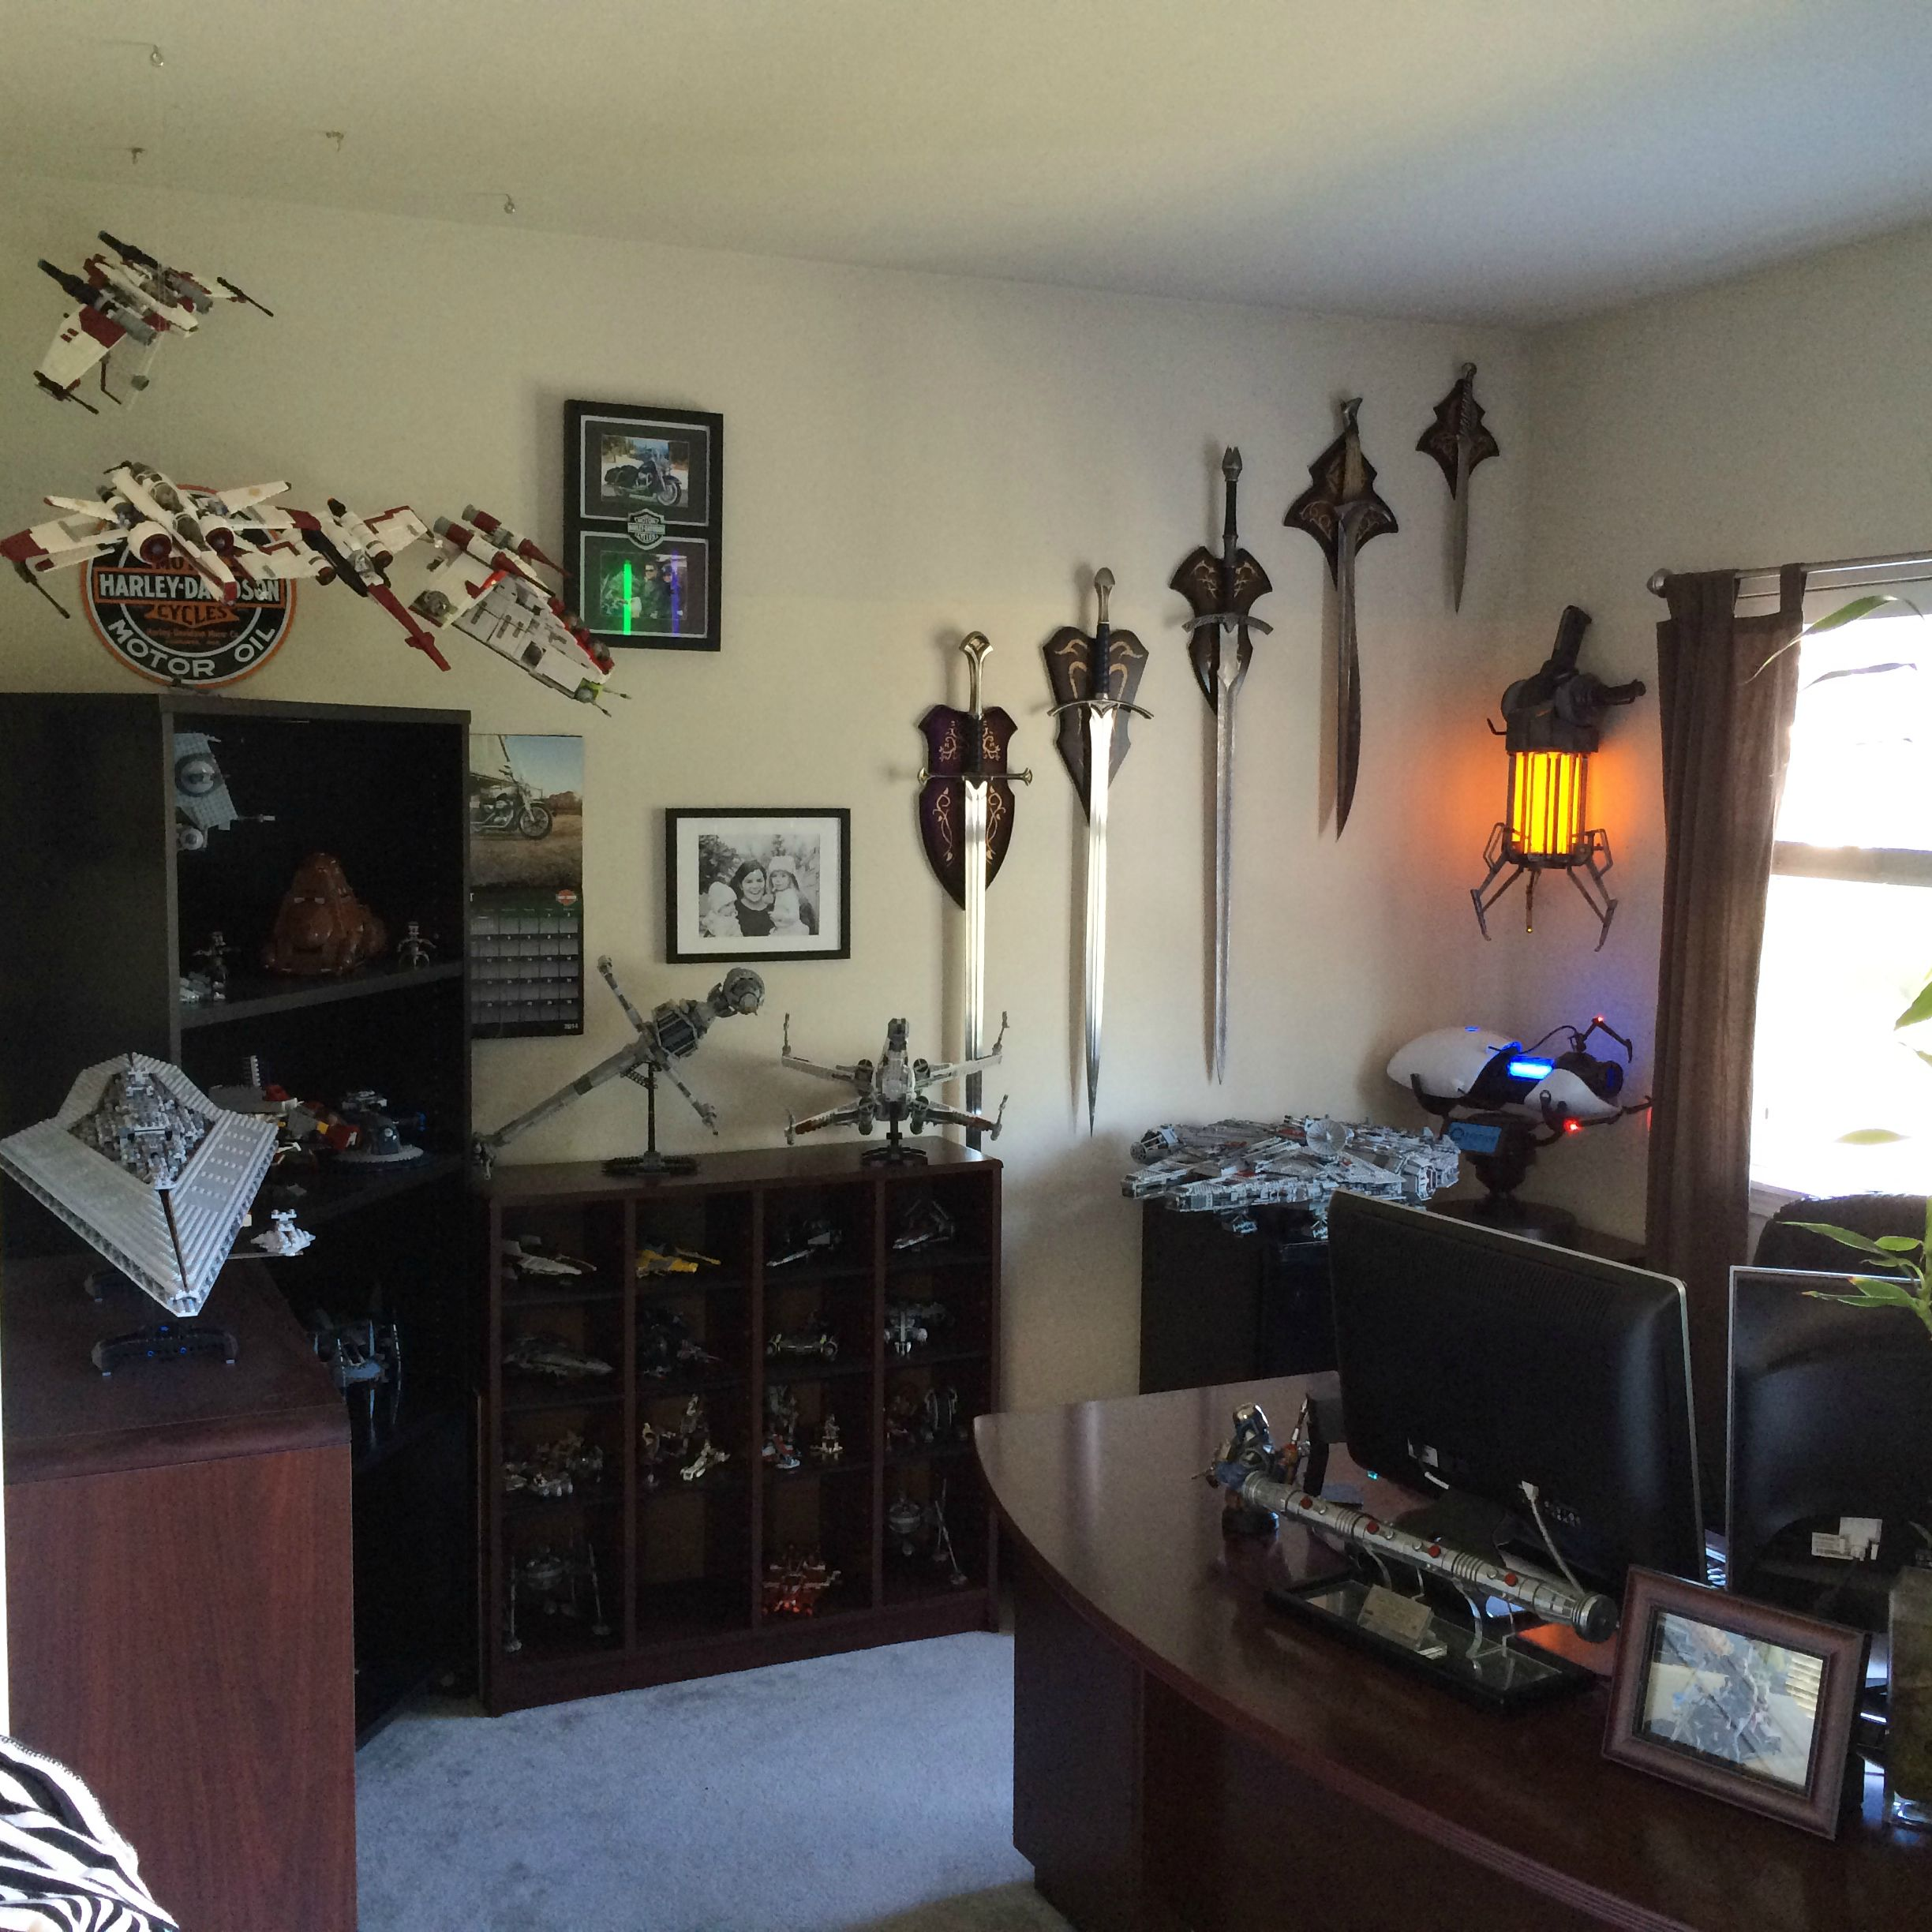 Man Cave Ideas Geek : Star wars room for the man who grew up geeky geek decor